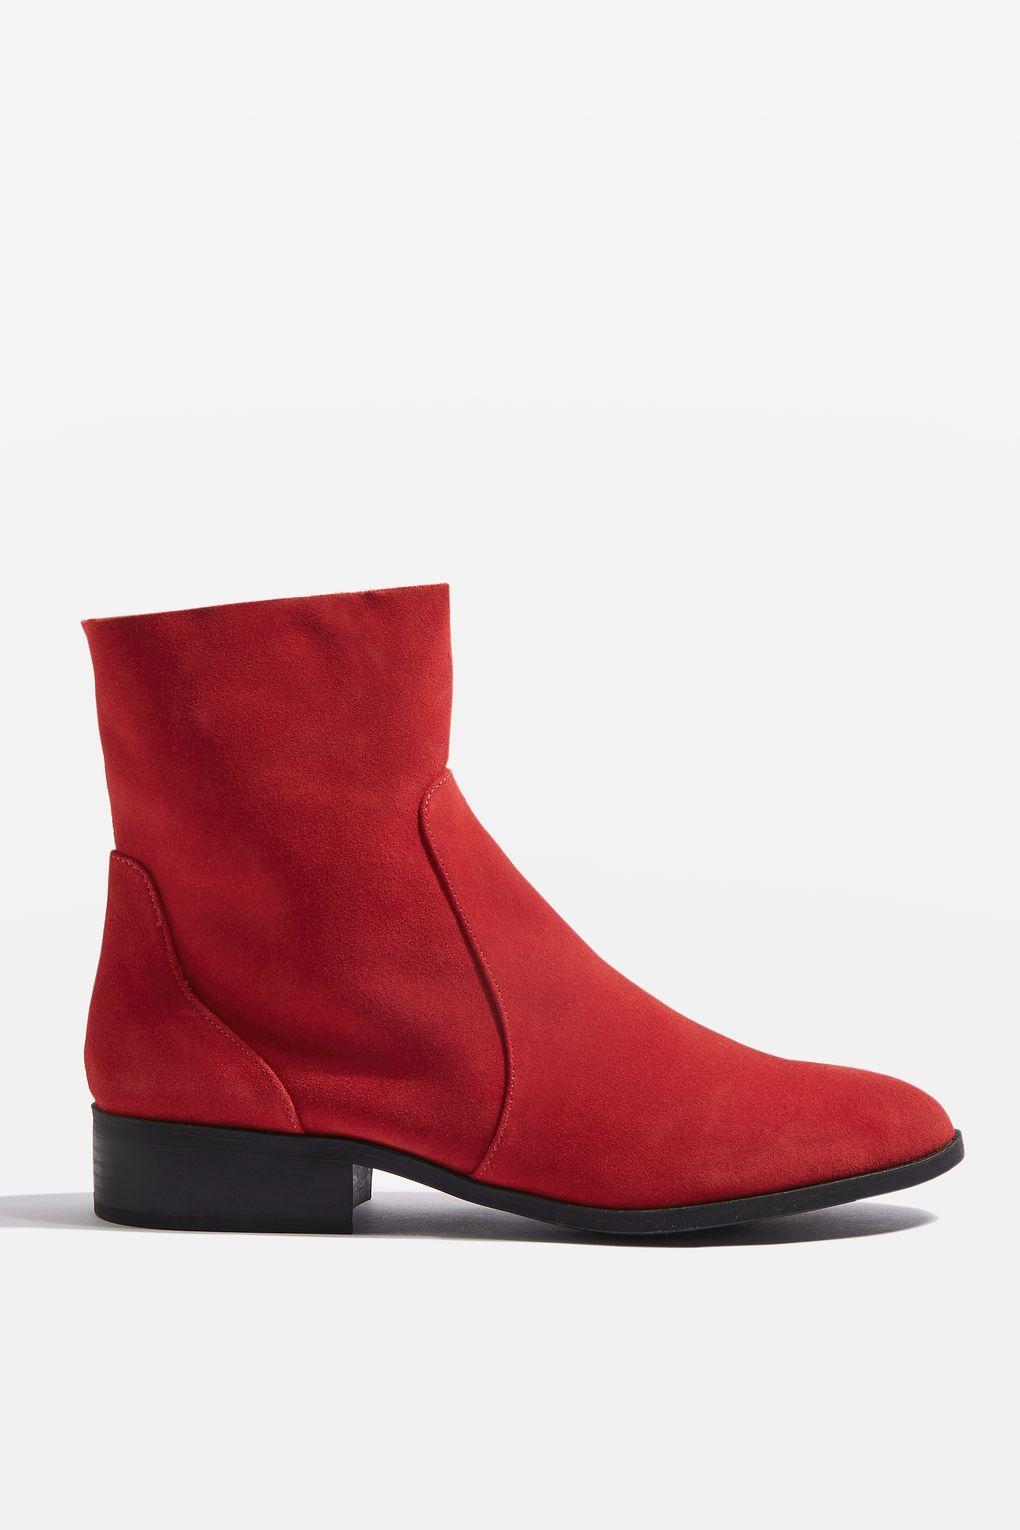 Topshop Red Soft Leather Shoes